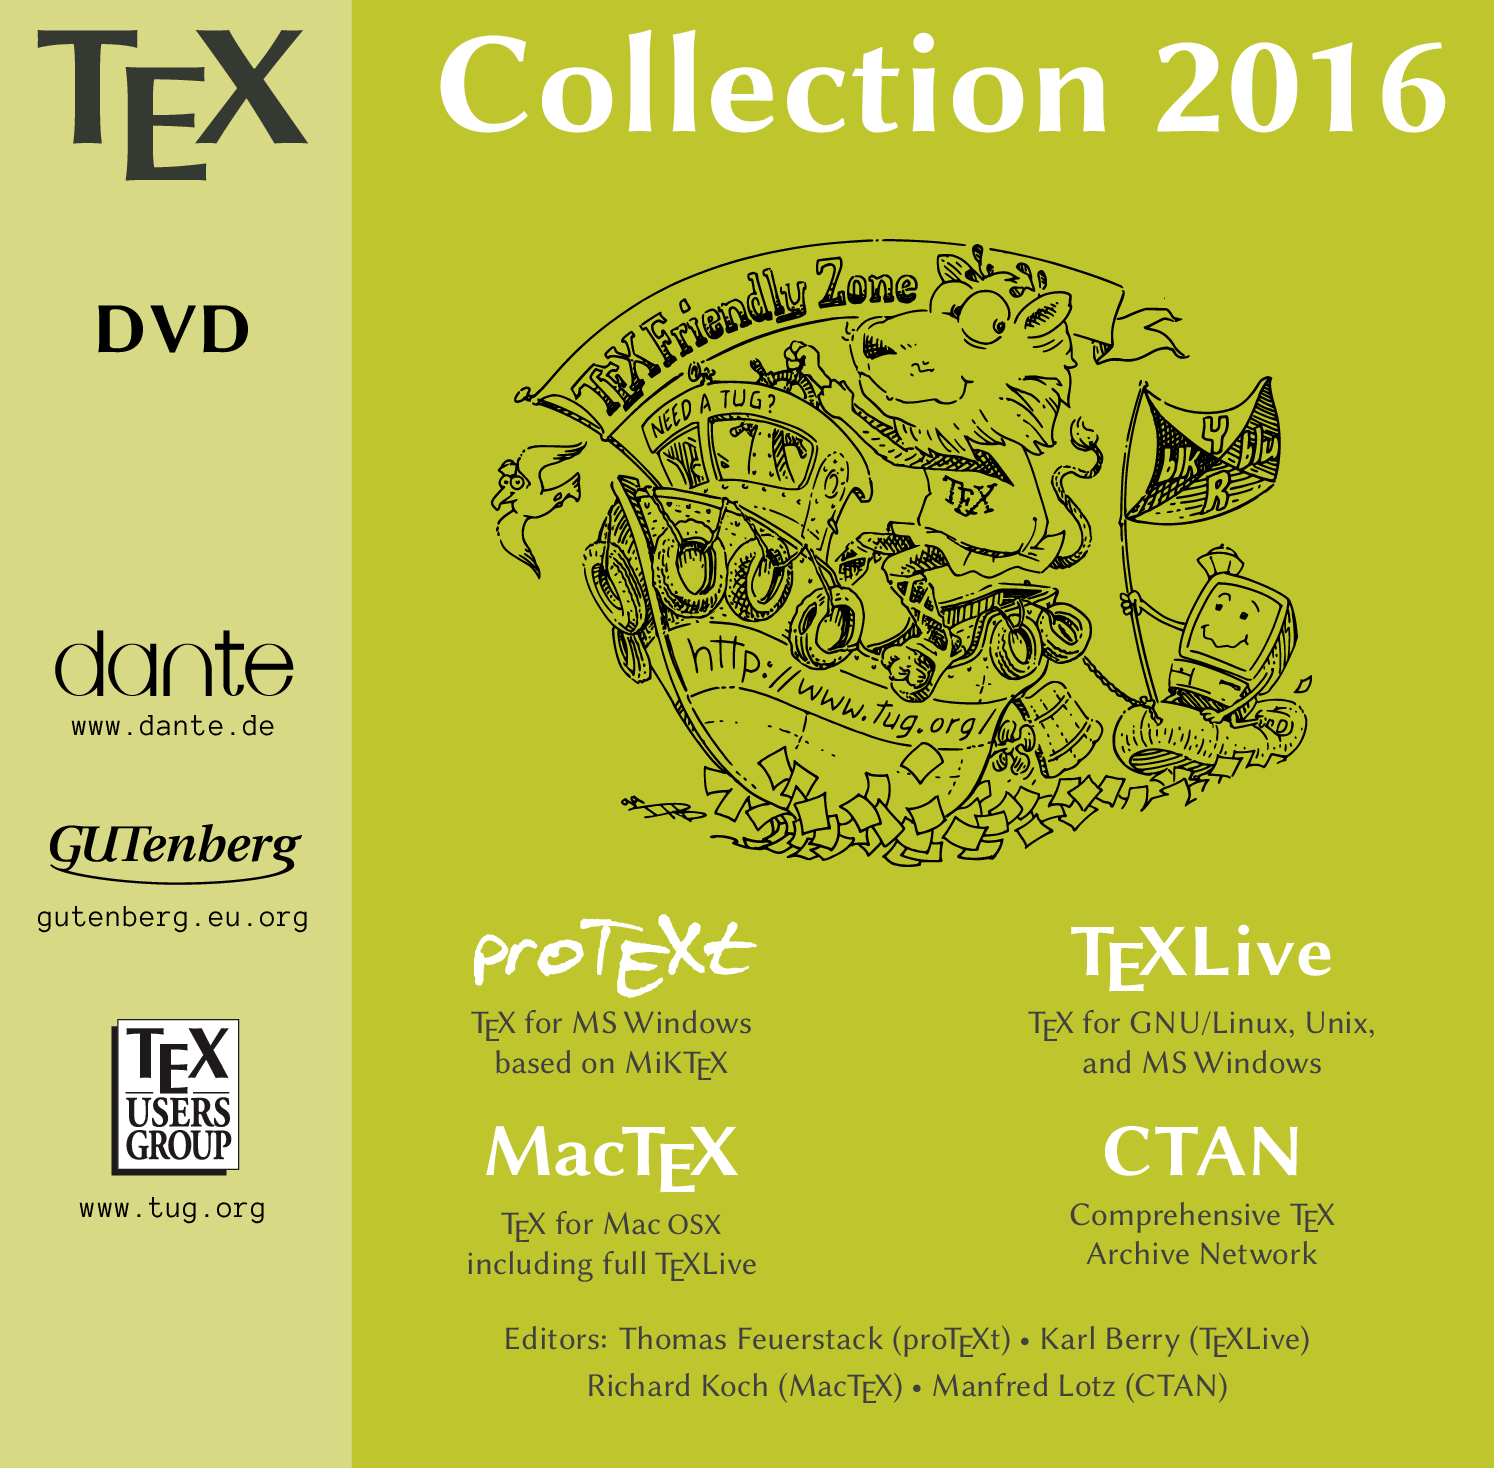 TeX Collection 2016